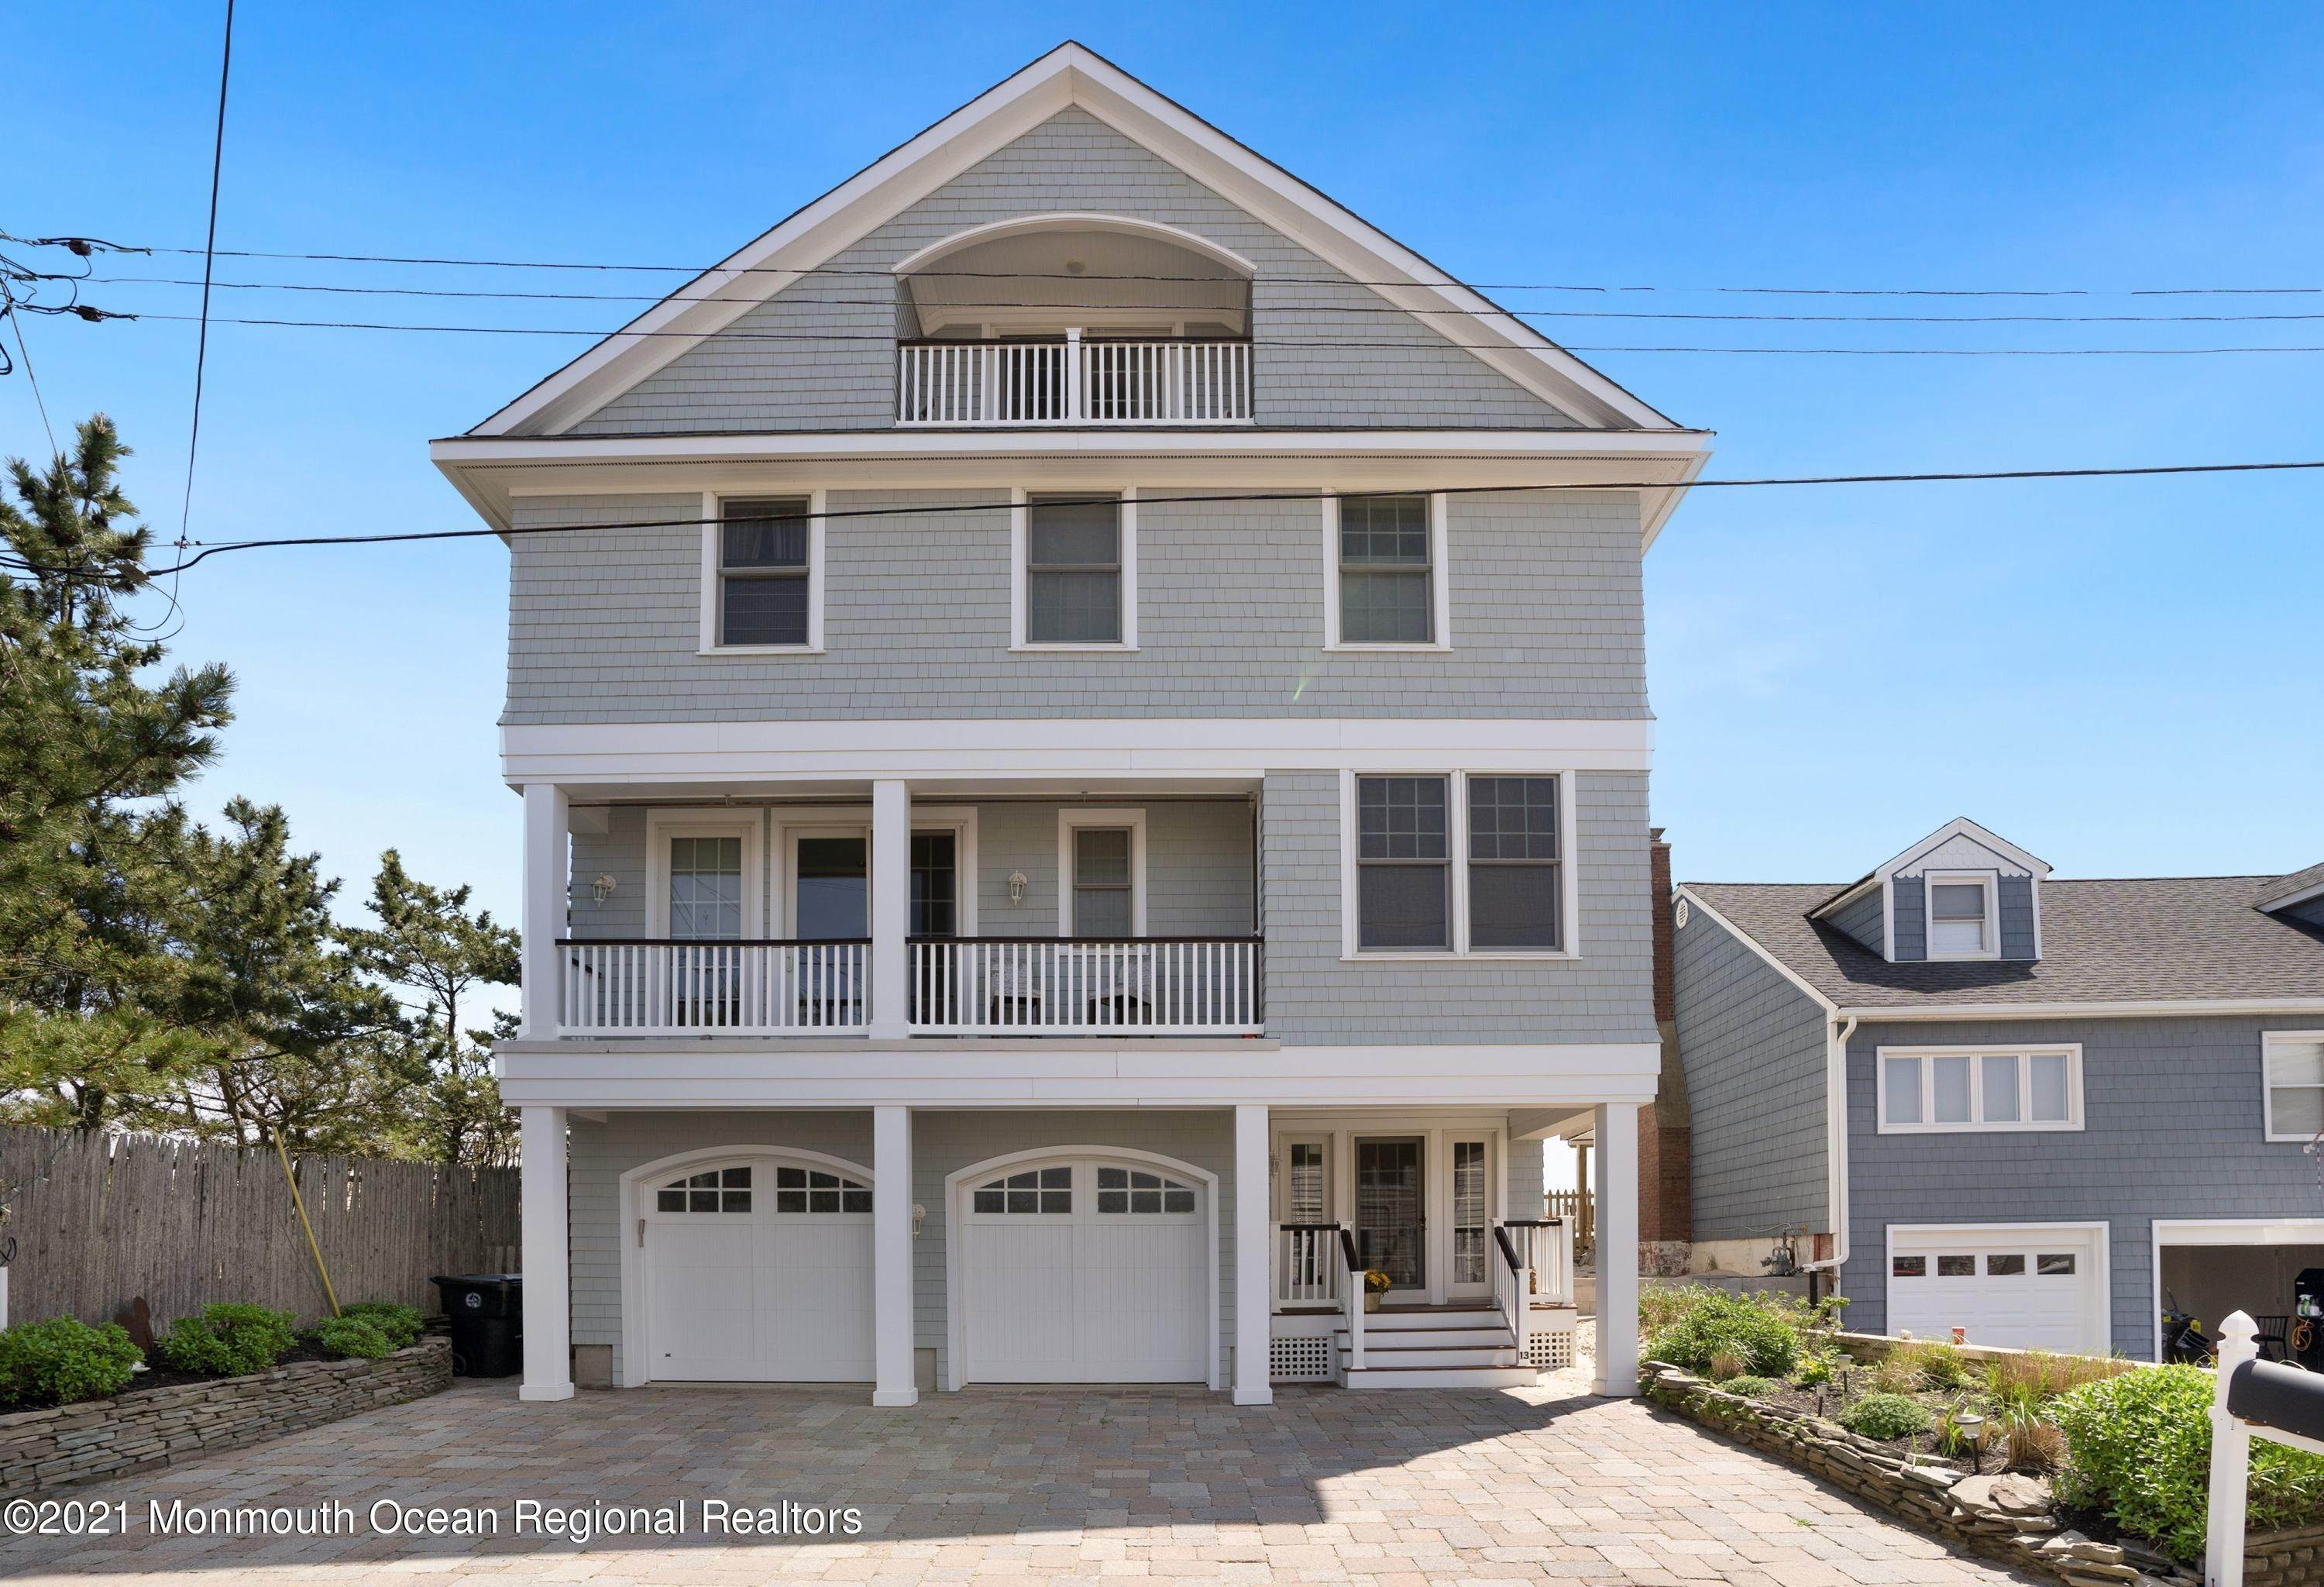 5. Single Family Homes for Sale at 13 Edgewater Terrace Mantoloking, New Jersey 08738 United States